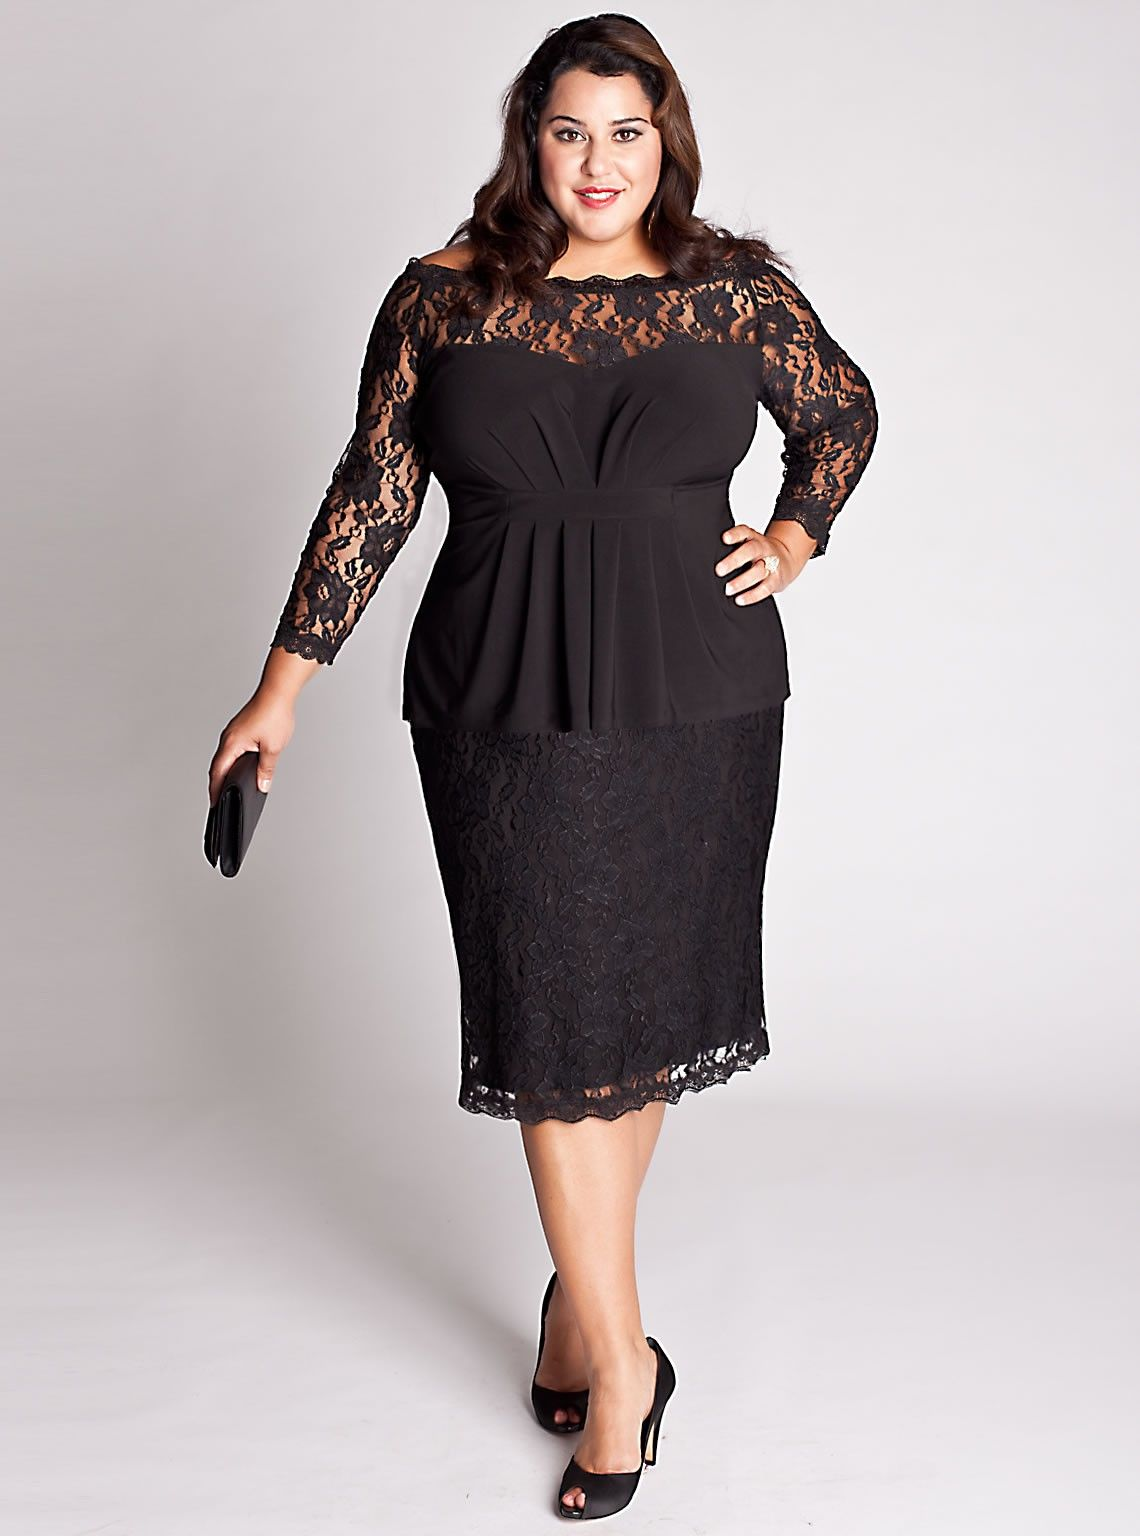 63 best ideas about Womens' Plus Sizes~ on Pinterest | Woman ...